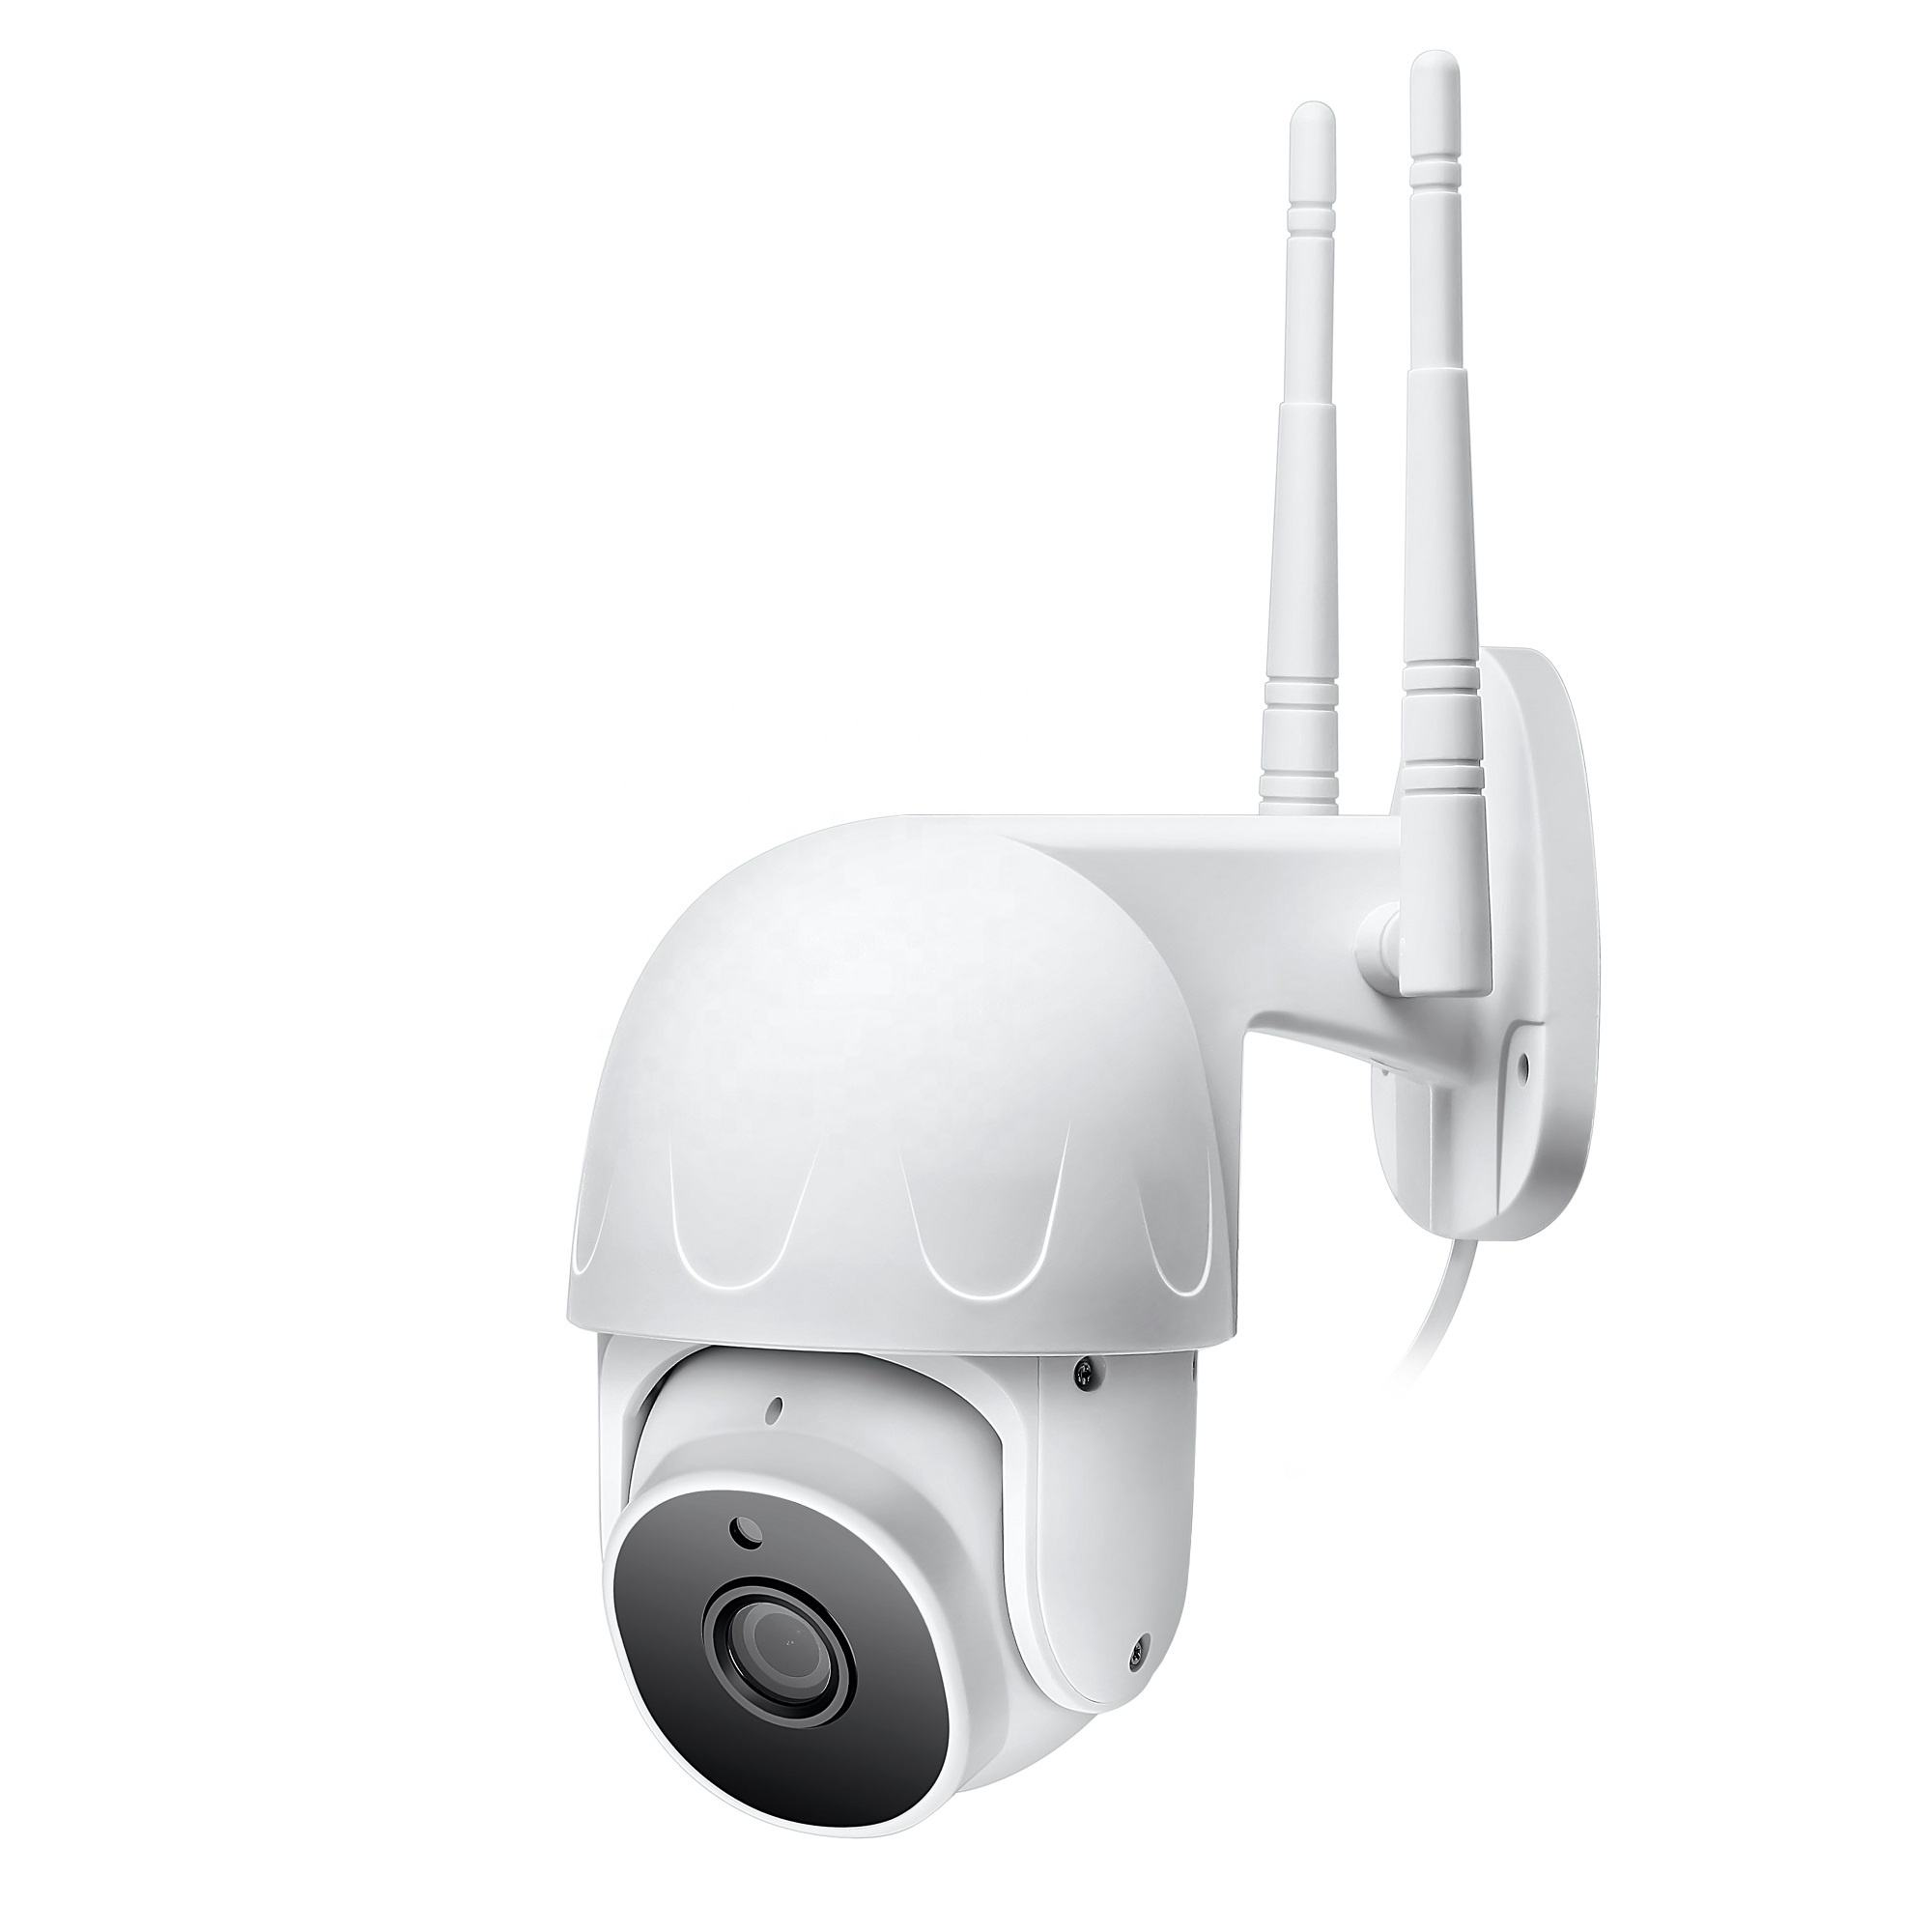 Bosesh outdoor ip camera auto tracking ptz cameras human auto track